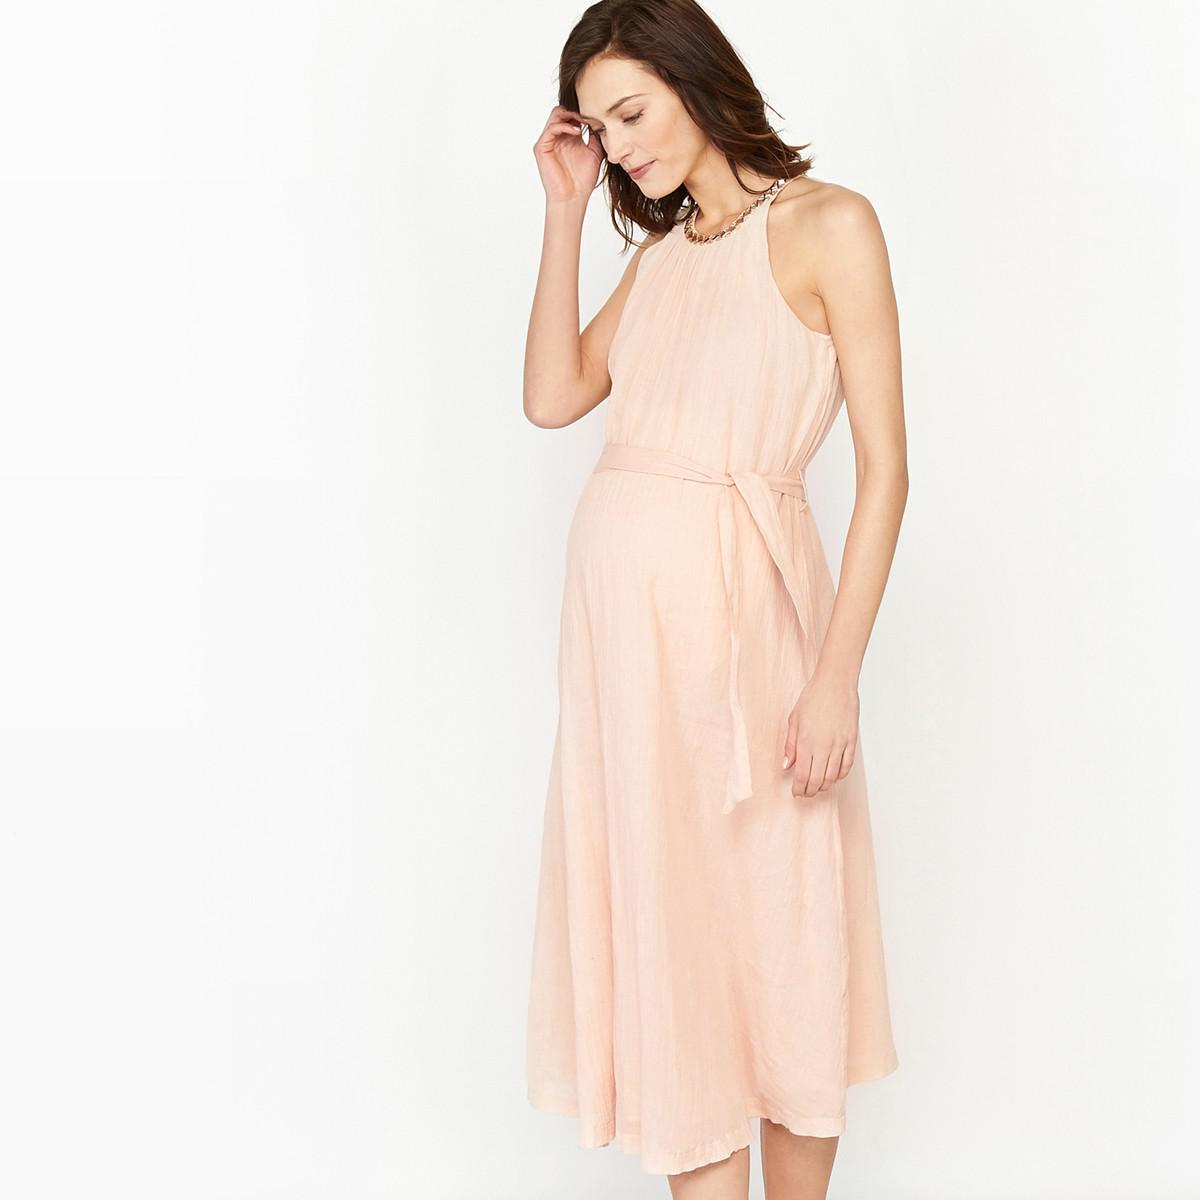 181bbb219f2a1 La Redoute Maternity Party Dress With Sparkly Details in Pink - Lyst